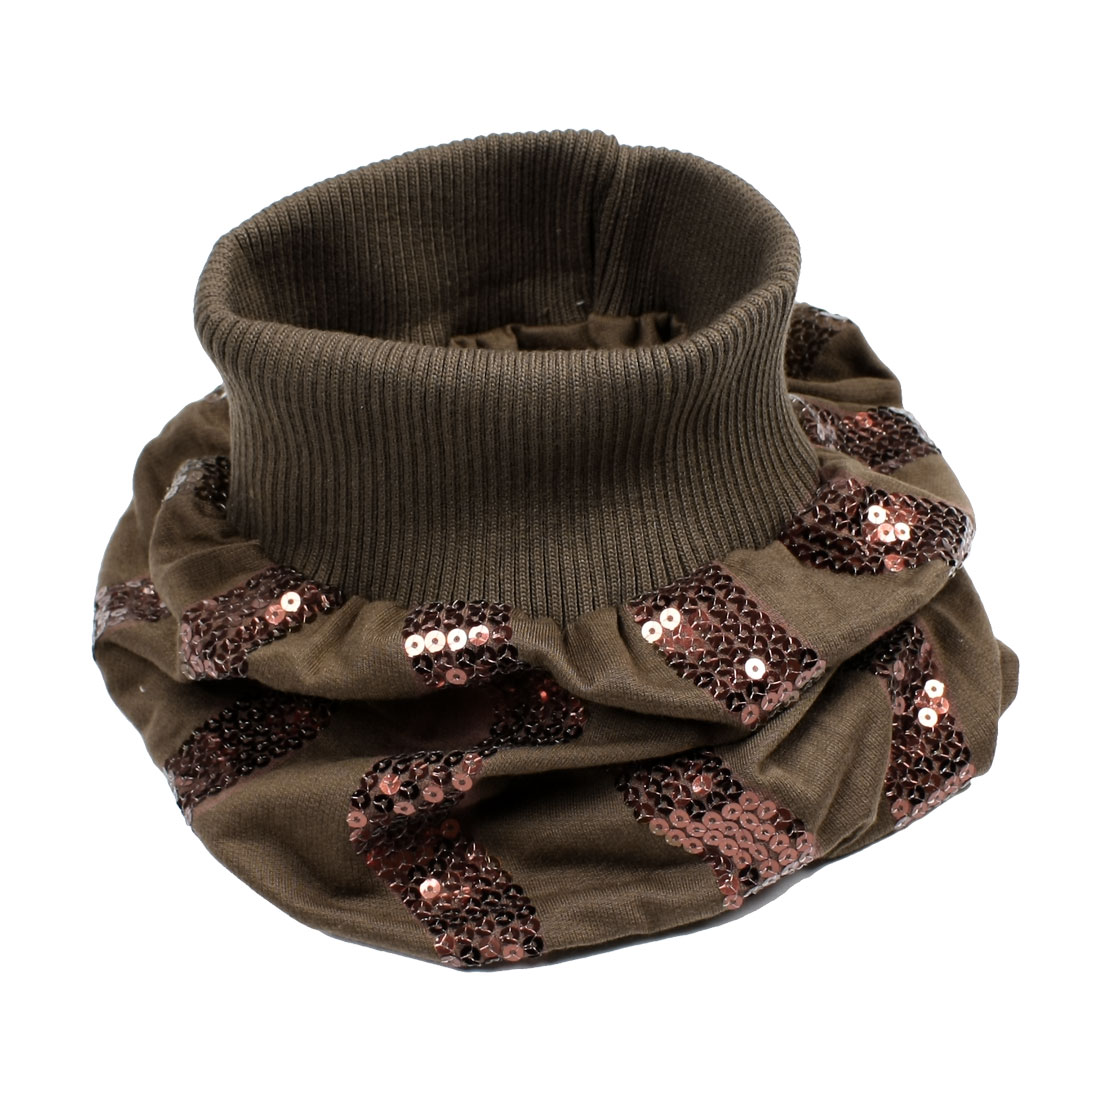 Lady Glittery Sequin Decor Elastic Neckerchief Hat Cap Warmer Brown